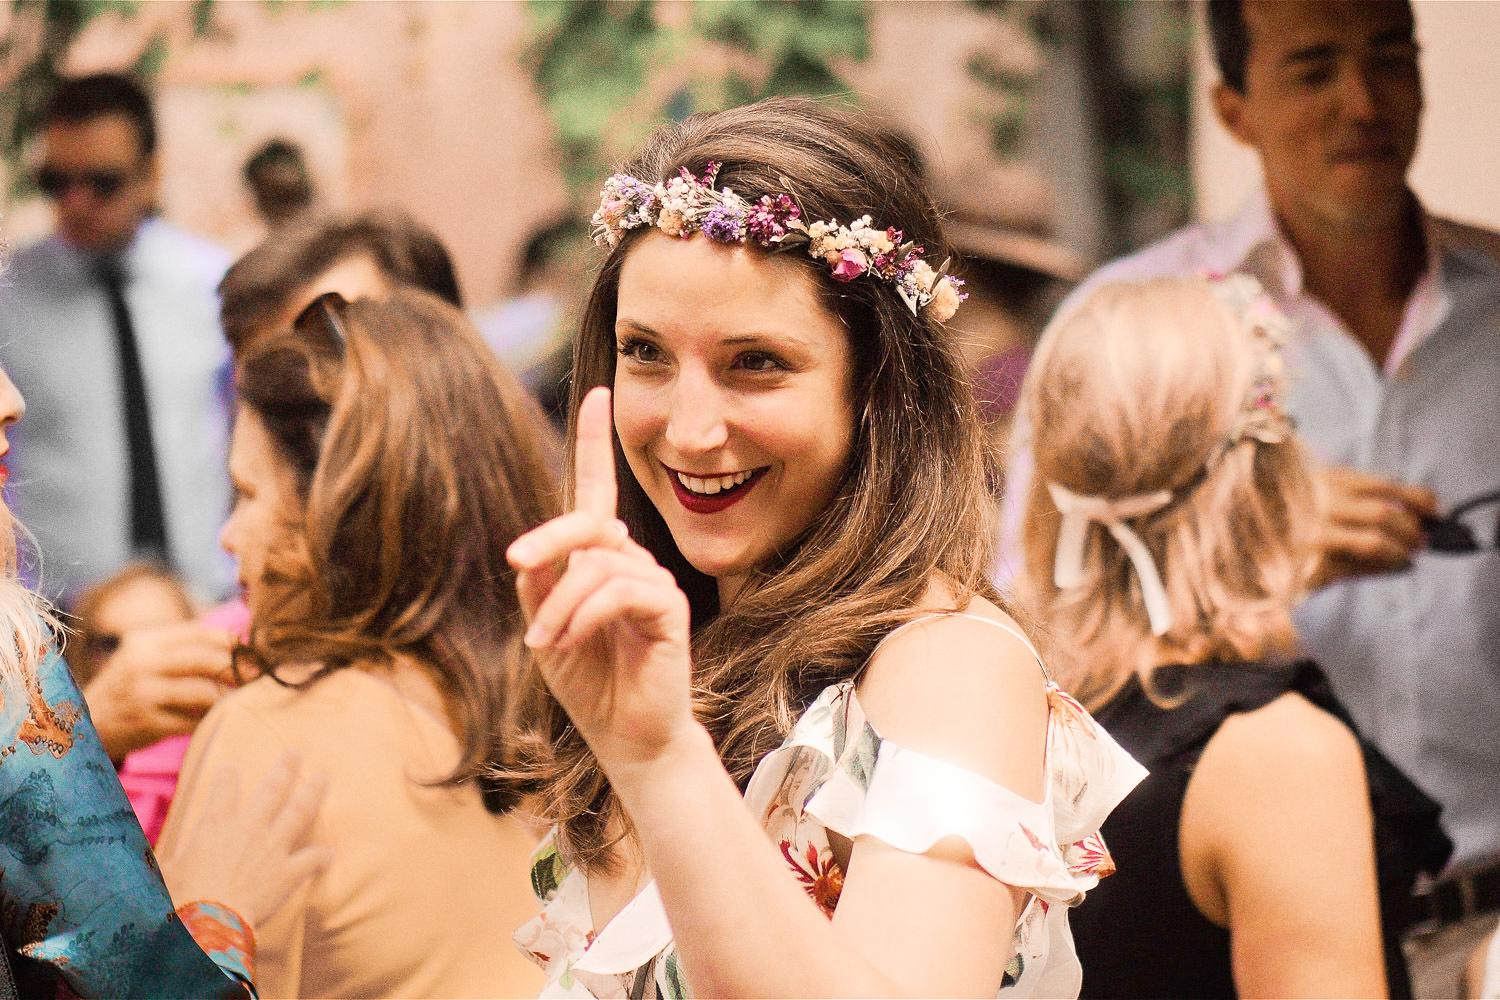 Bridesmaid with flowers in her hair, raises her finger